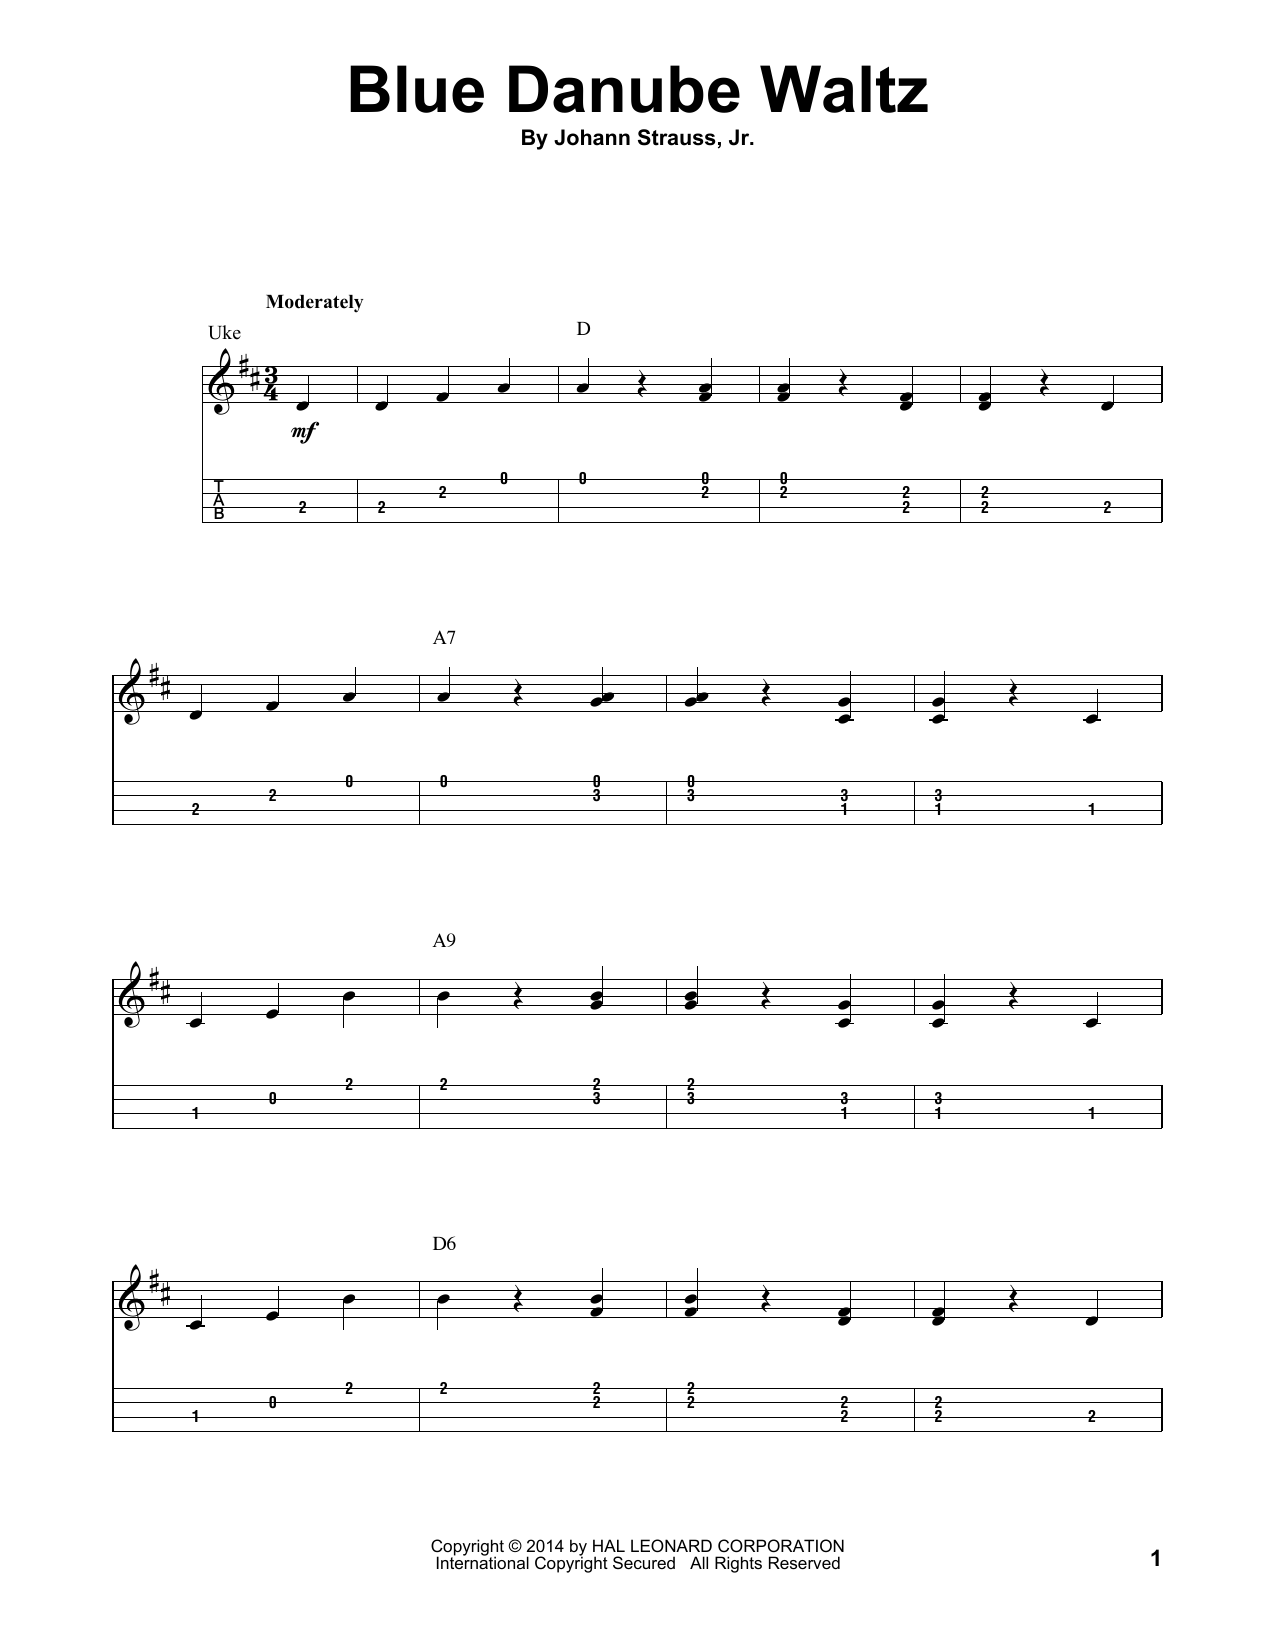 Tablature guitare Blue Danube Waltz de Johann Strauss II - Ukulele